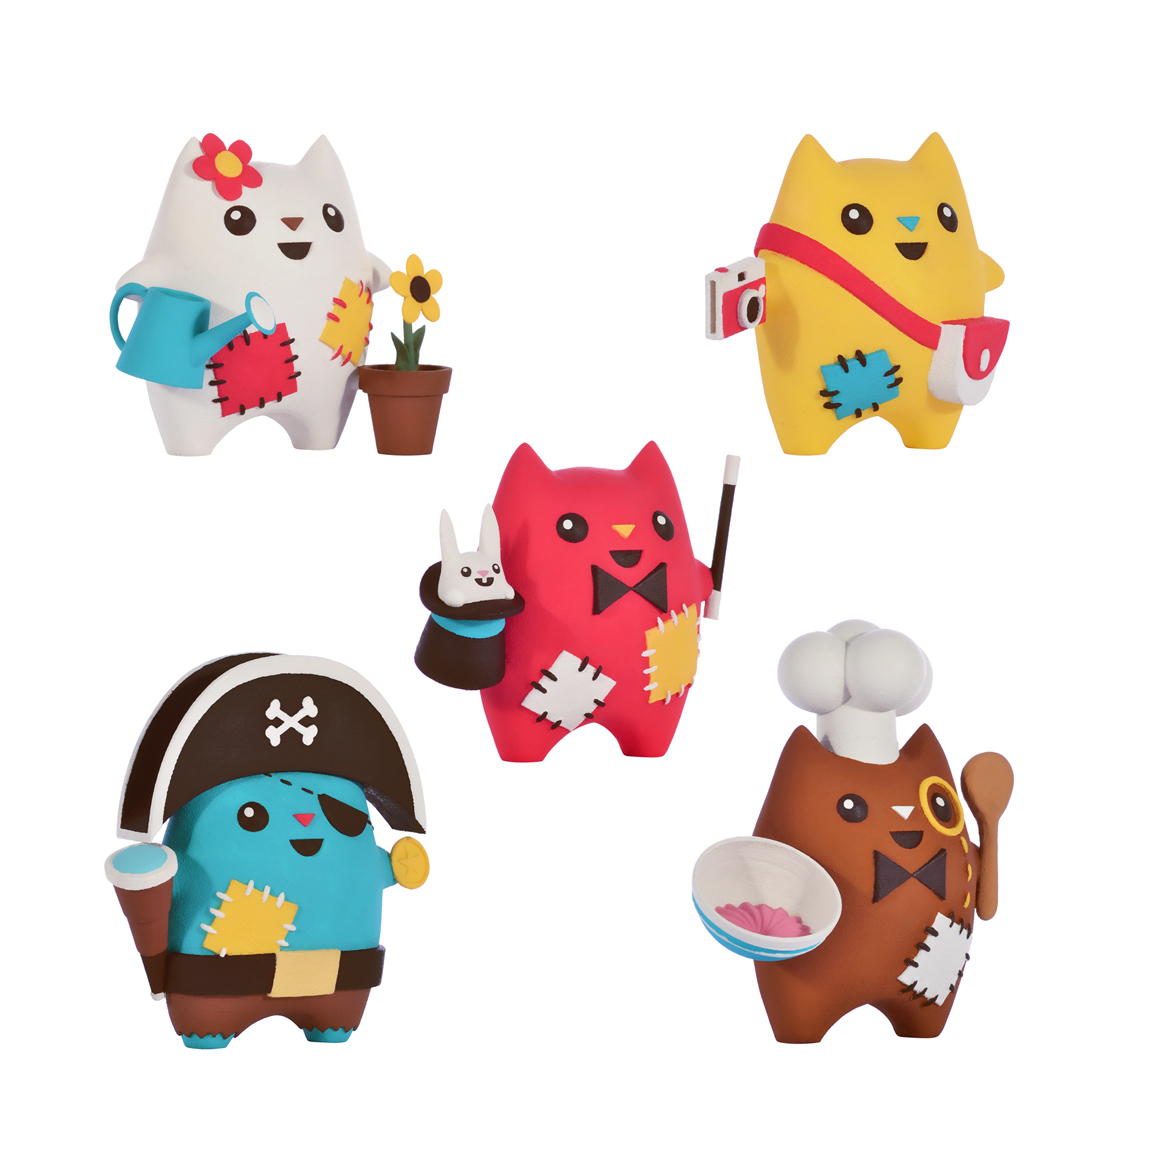 press_oddcats_minifigurines_group_lowres.jpg